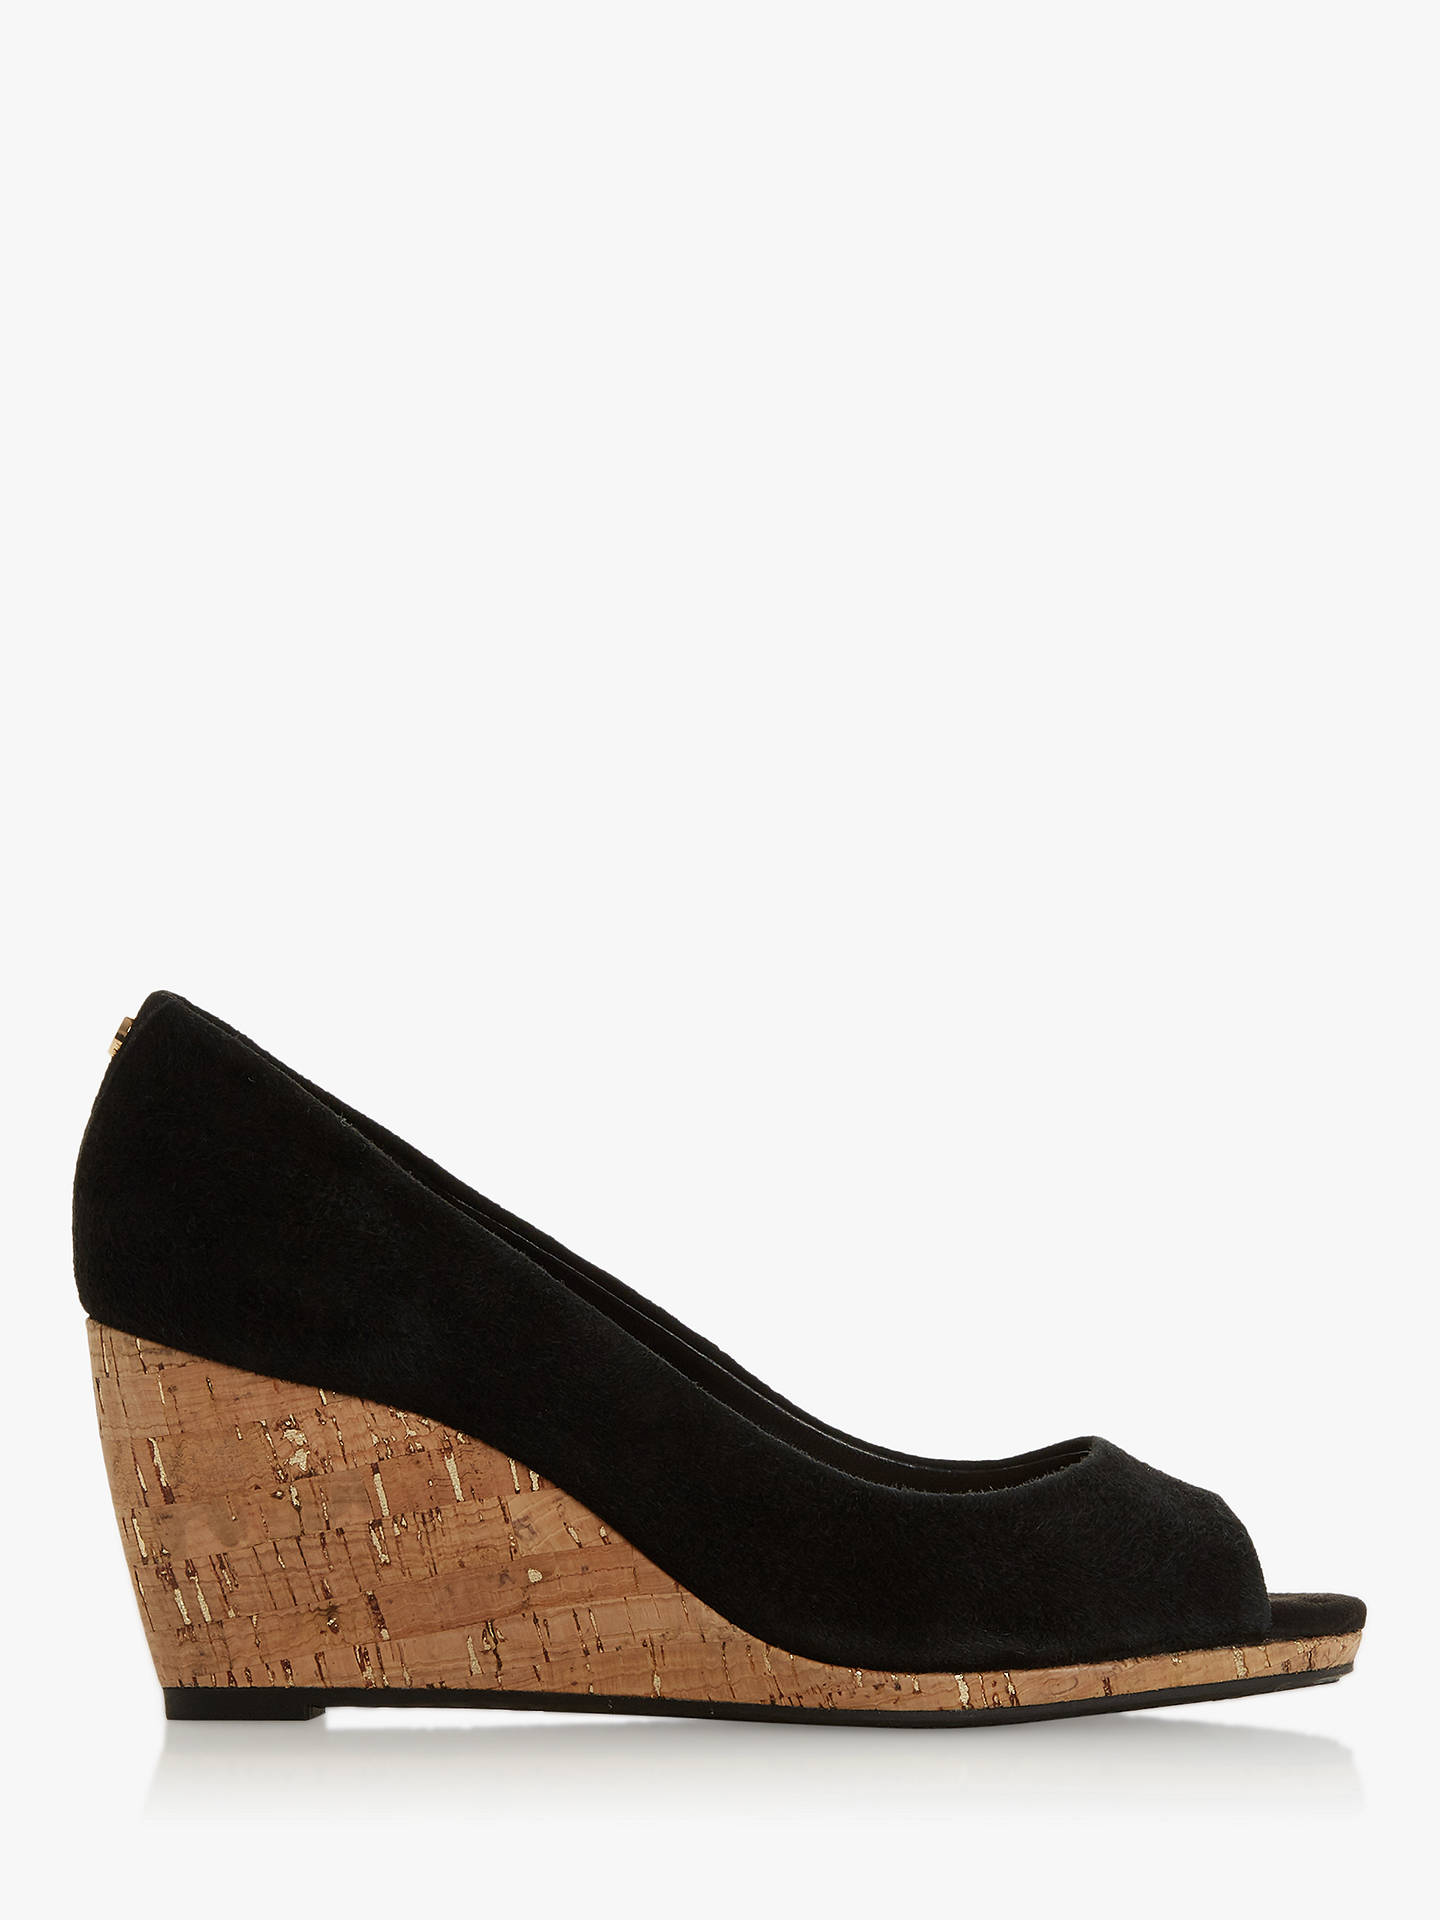 63ed6d35b97 Dune Caydence Peep Toe Cork Wedge Court Shoes, Black Suede